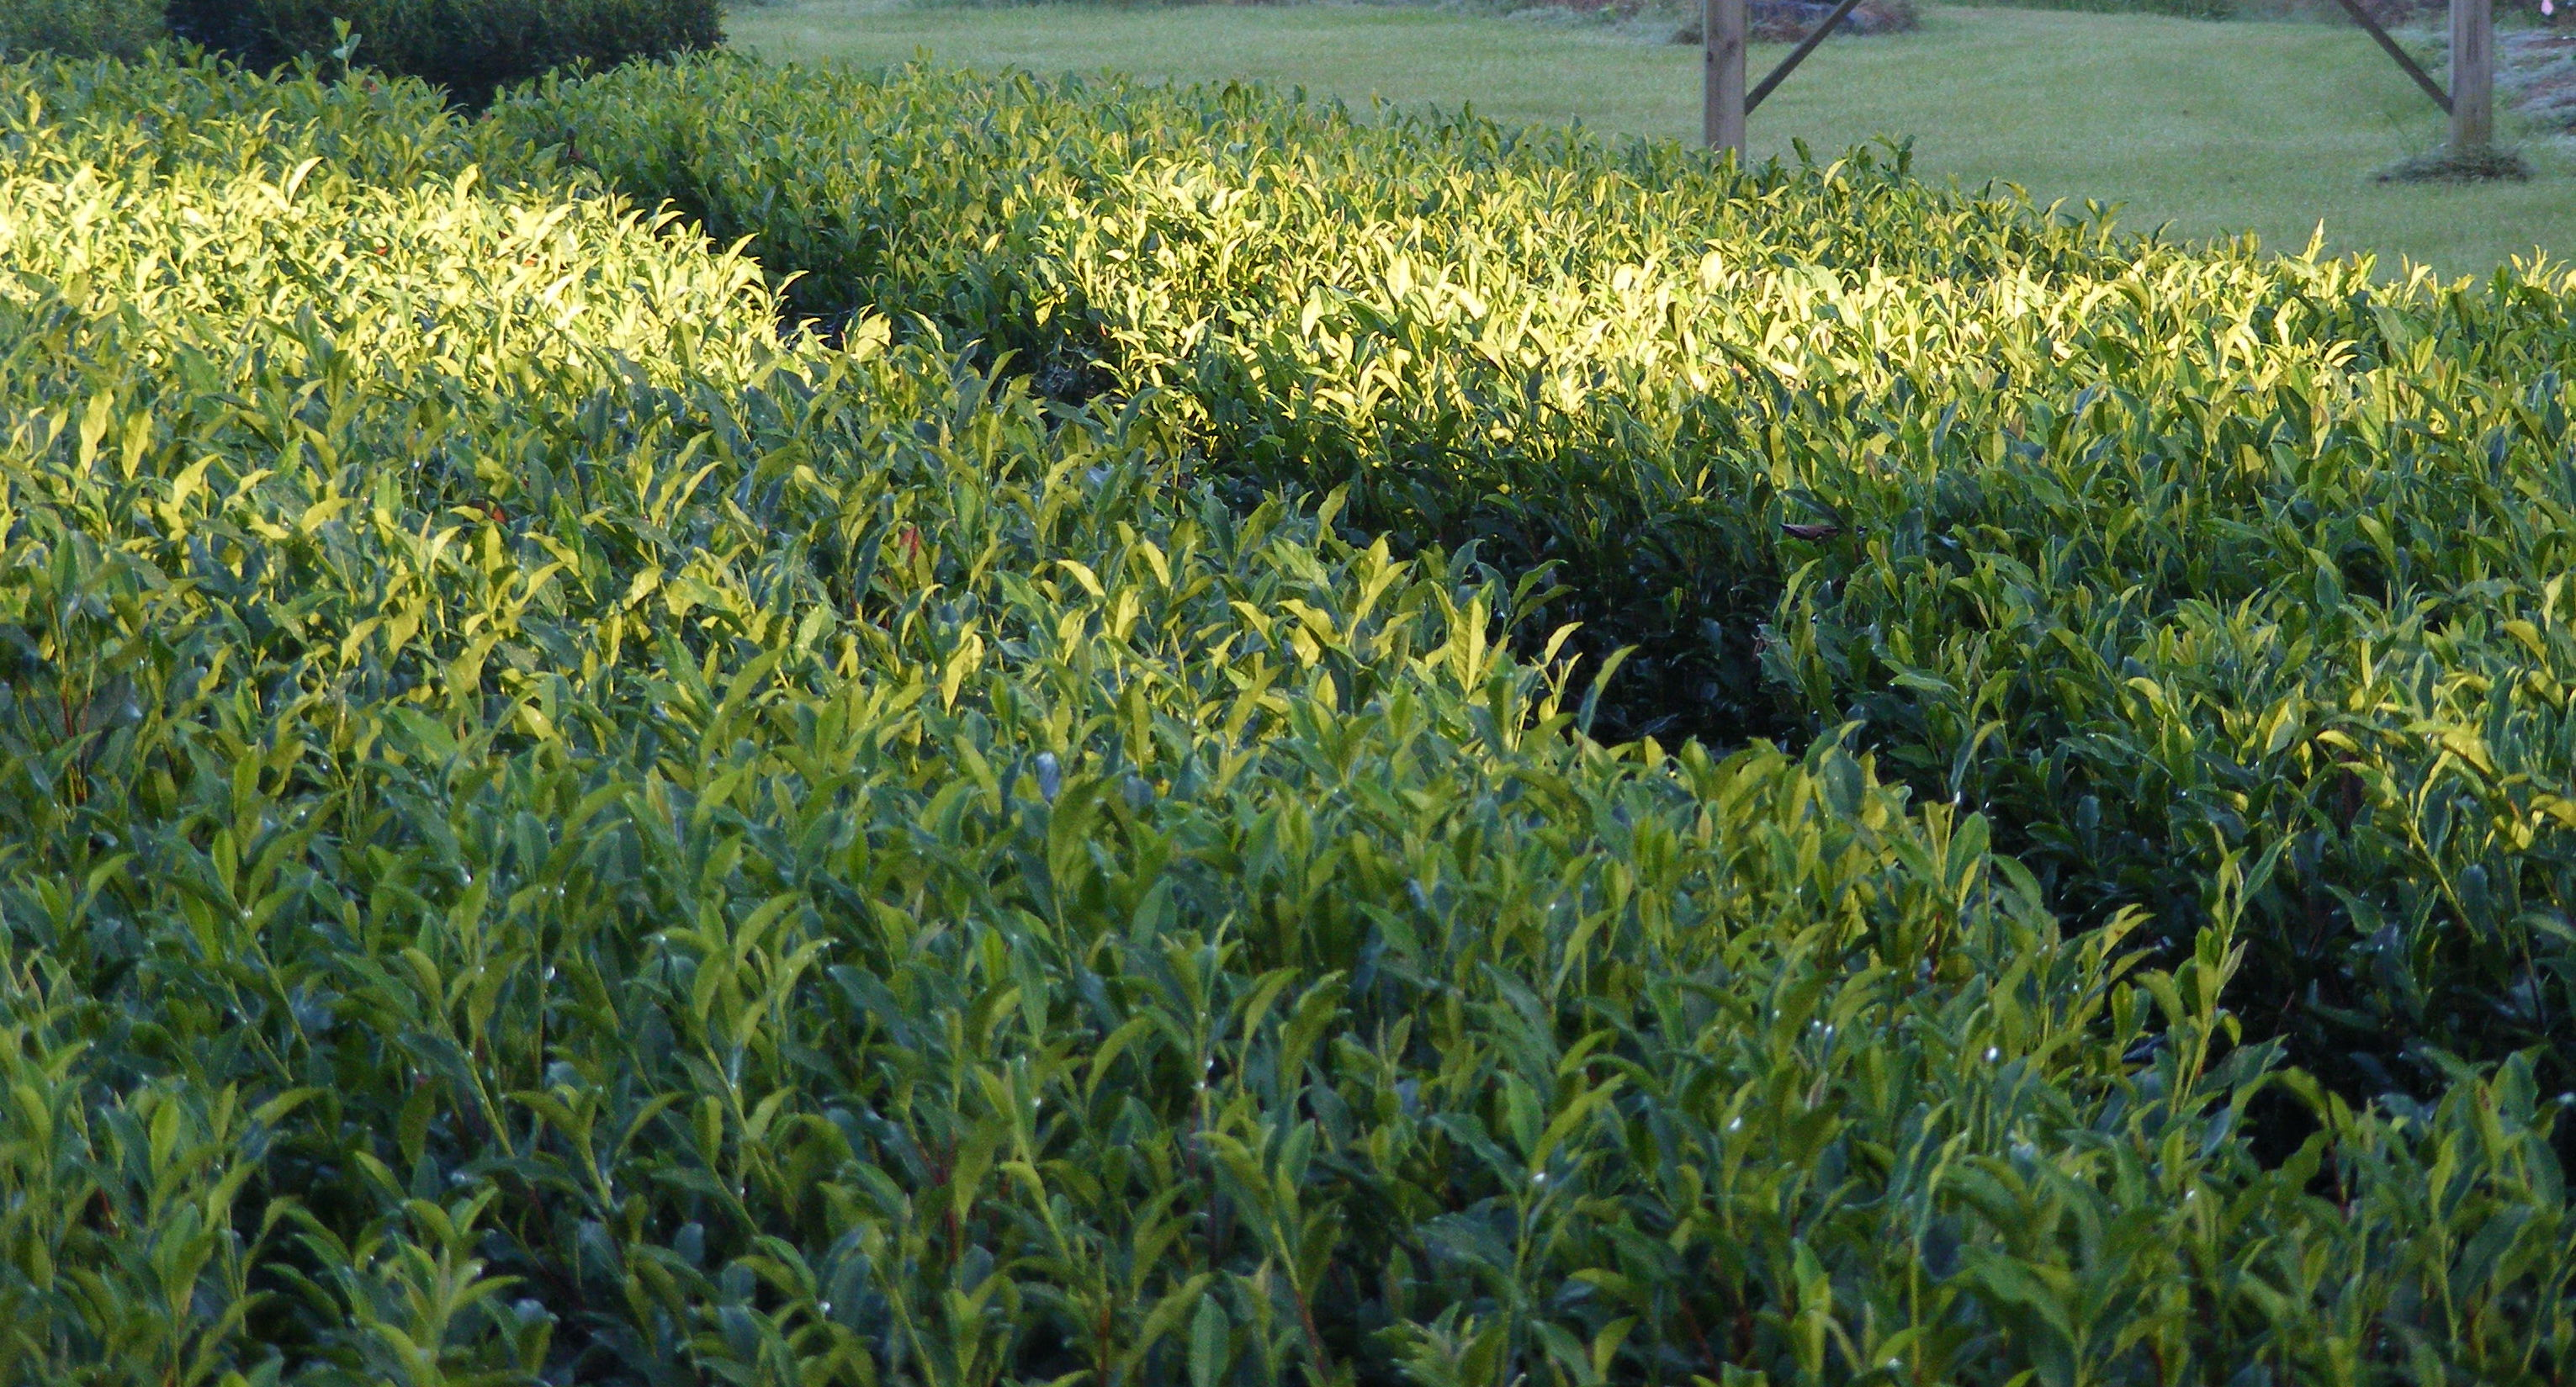 Tea Plants in the Sunset